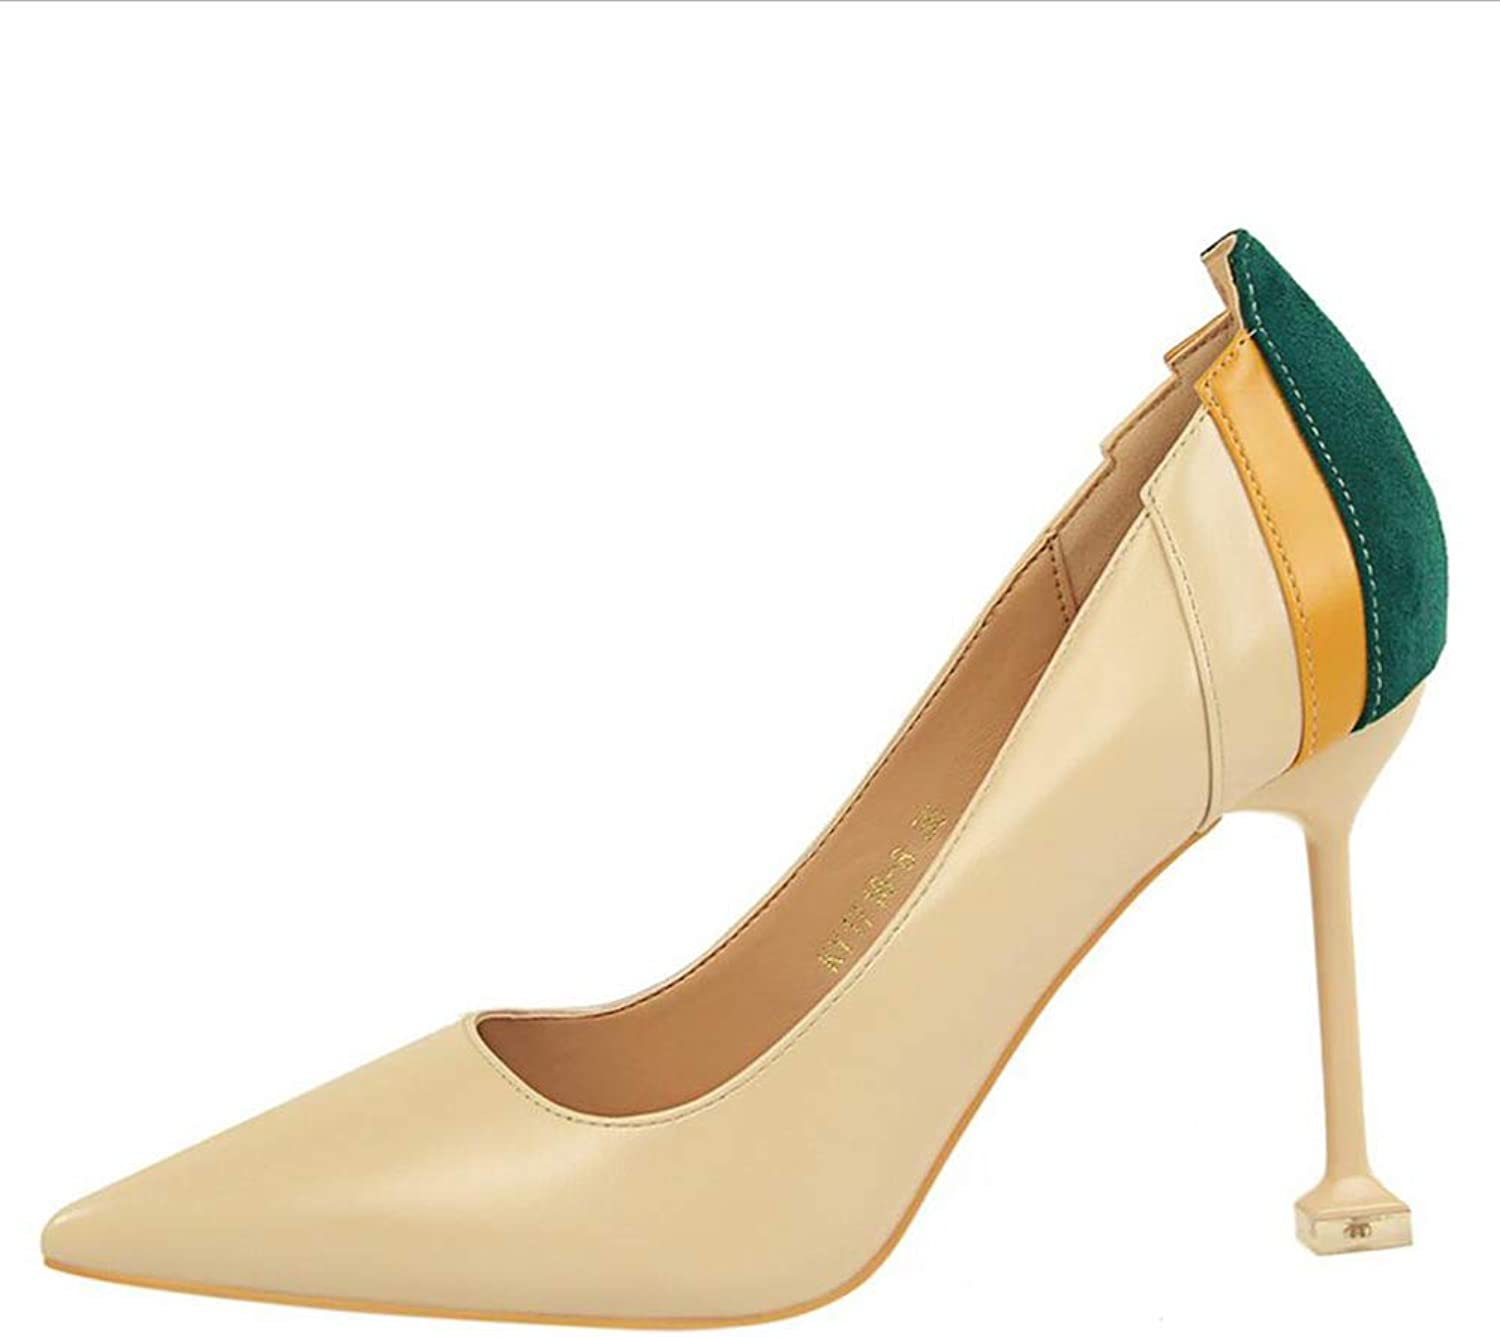 shoes Court shoes Women's shoes High HeelFashion Simple Female Fine Heel Shallow Mouth Pointed Mixed colors Sexy shoes Haiming (color   Nude color, Size   39)